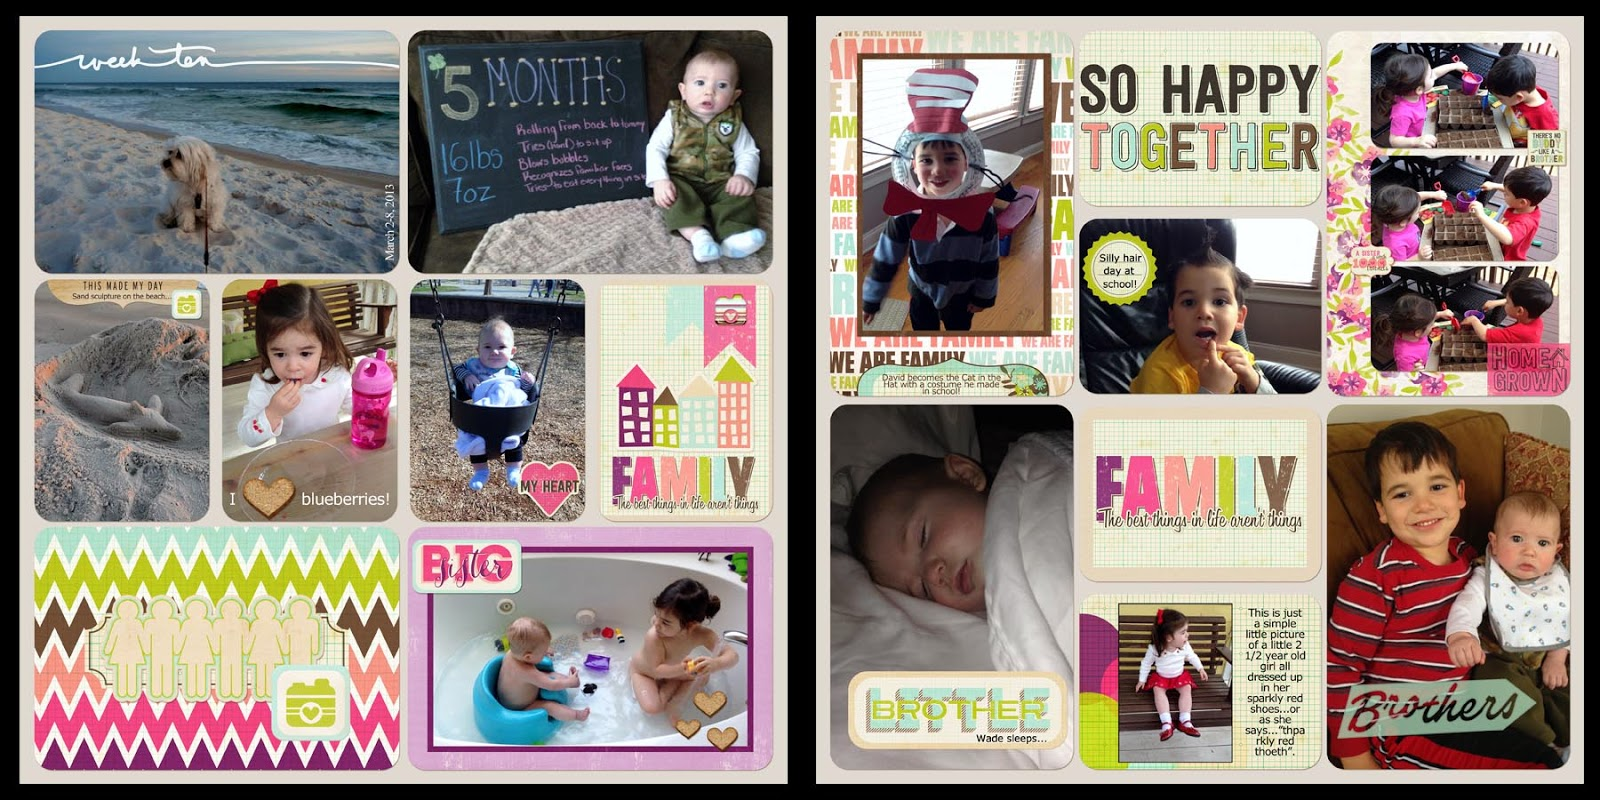 http://www.expressionavenue.blogspot.com/2014/09/project-life-2014-week-10.html